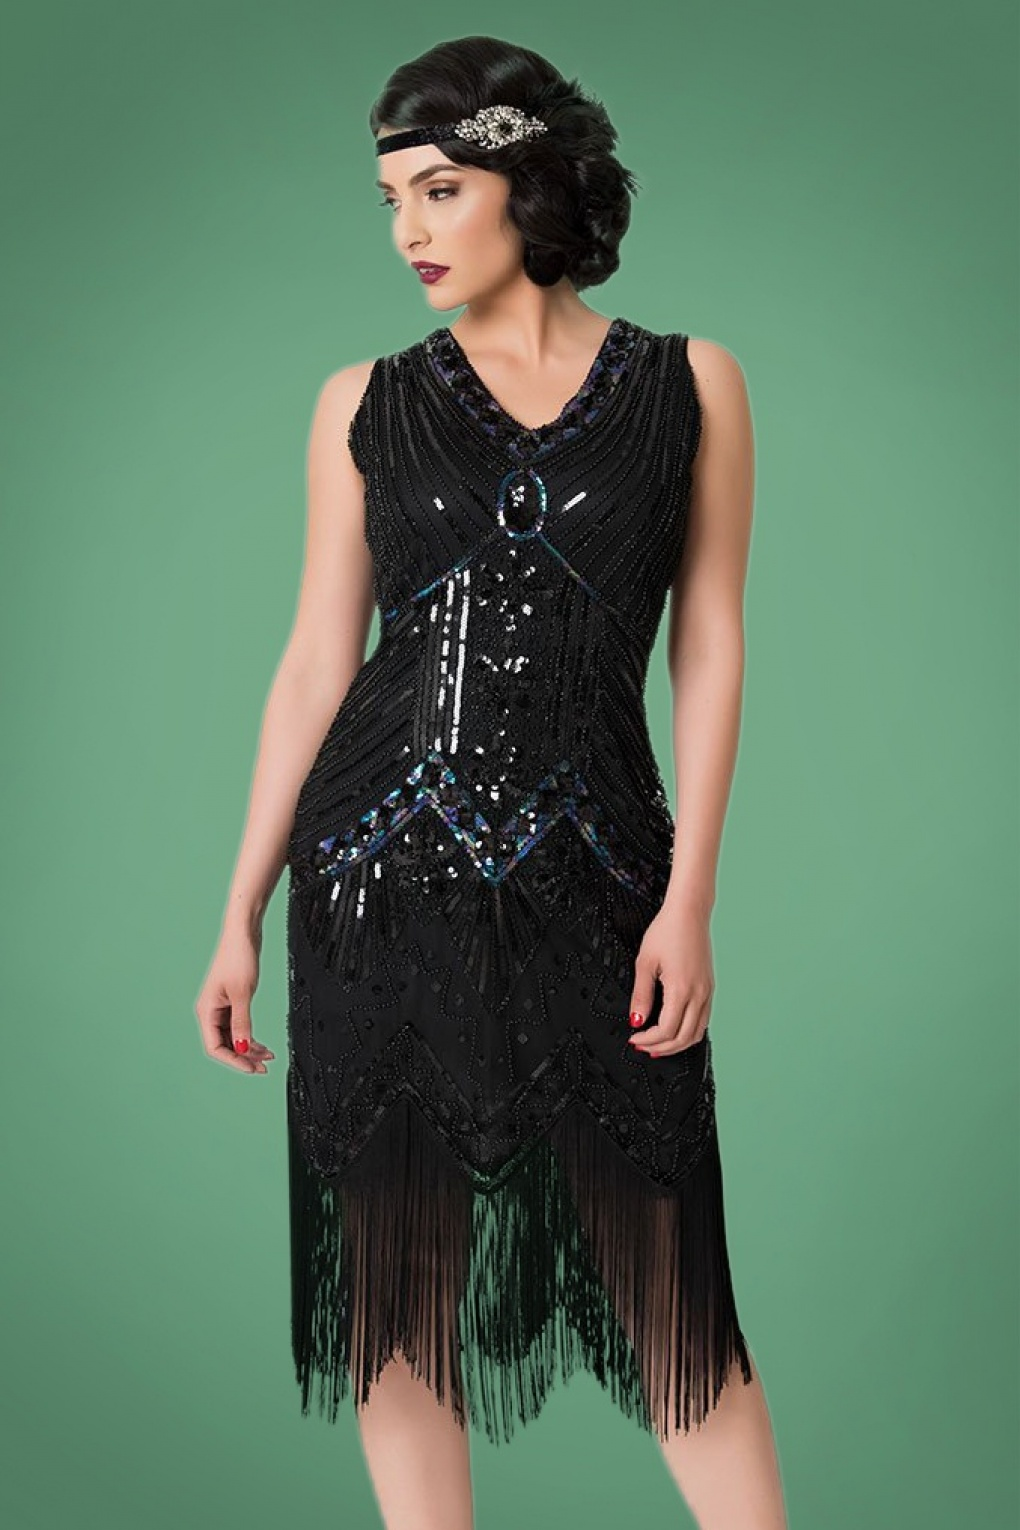 1920s Evening Dresses & Formal Gowns 20s Veronique Fringe Flapper Dress in Metallic Black £109.41 AT vintagedancer.com